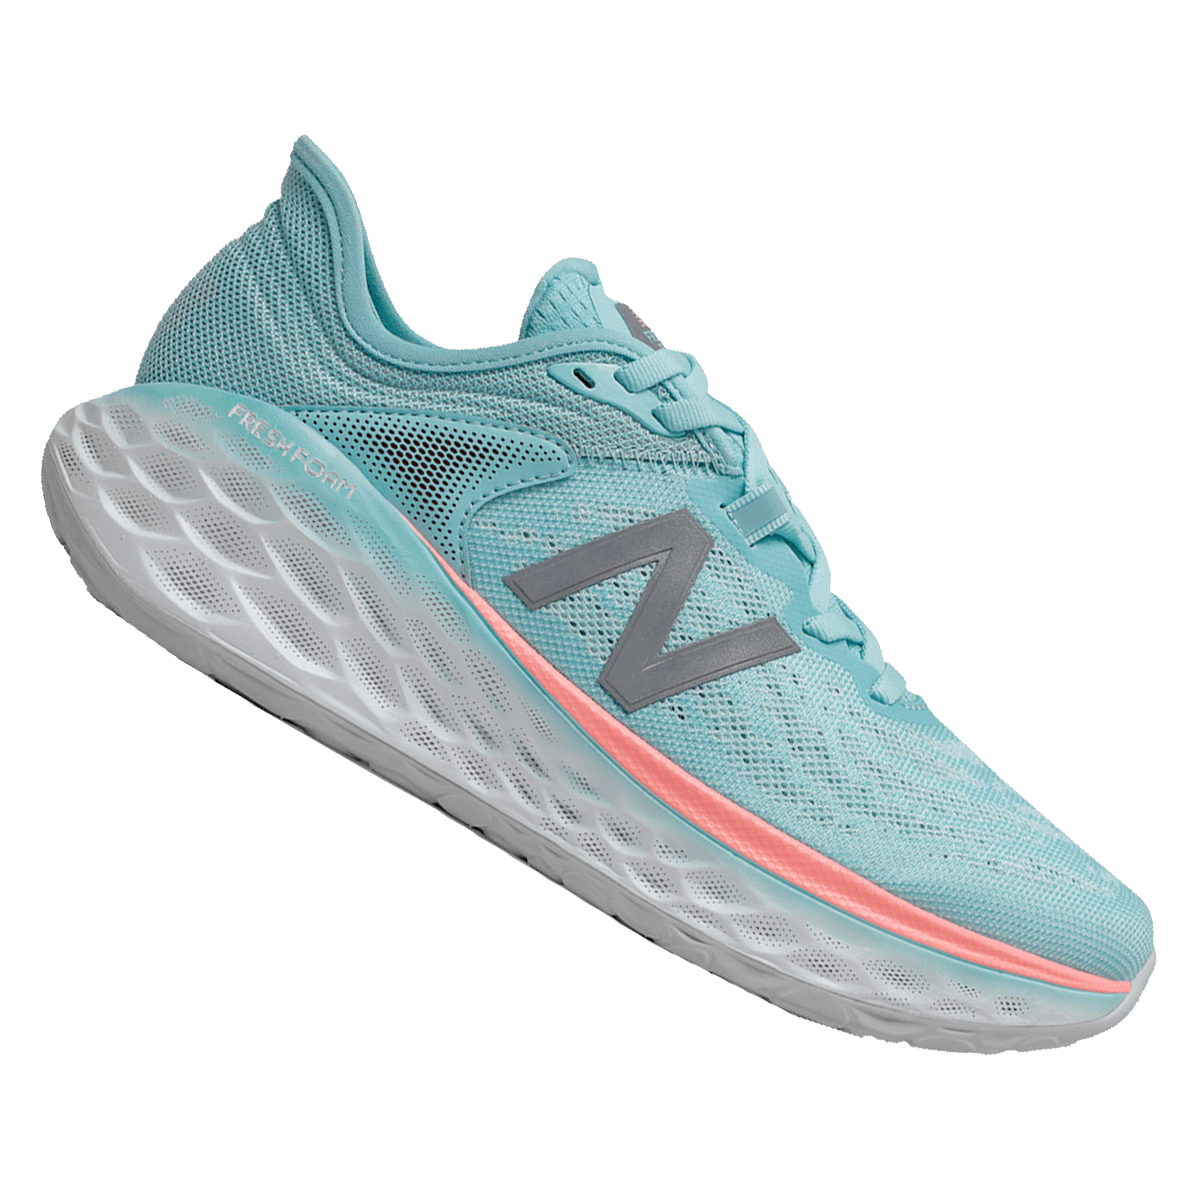 New Balance chaussures running femme Fresh Foam More turquoise / gris